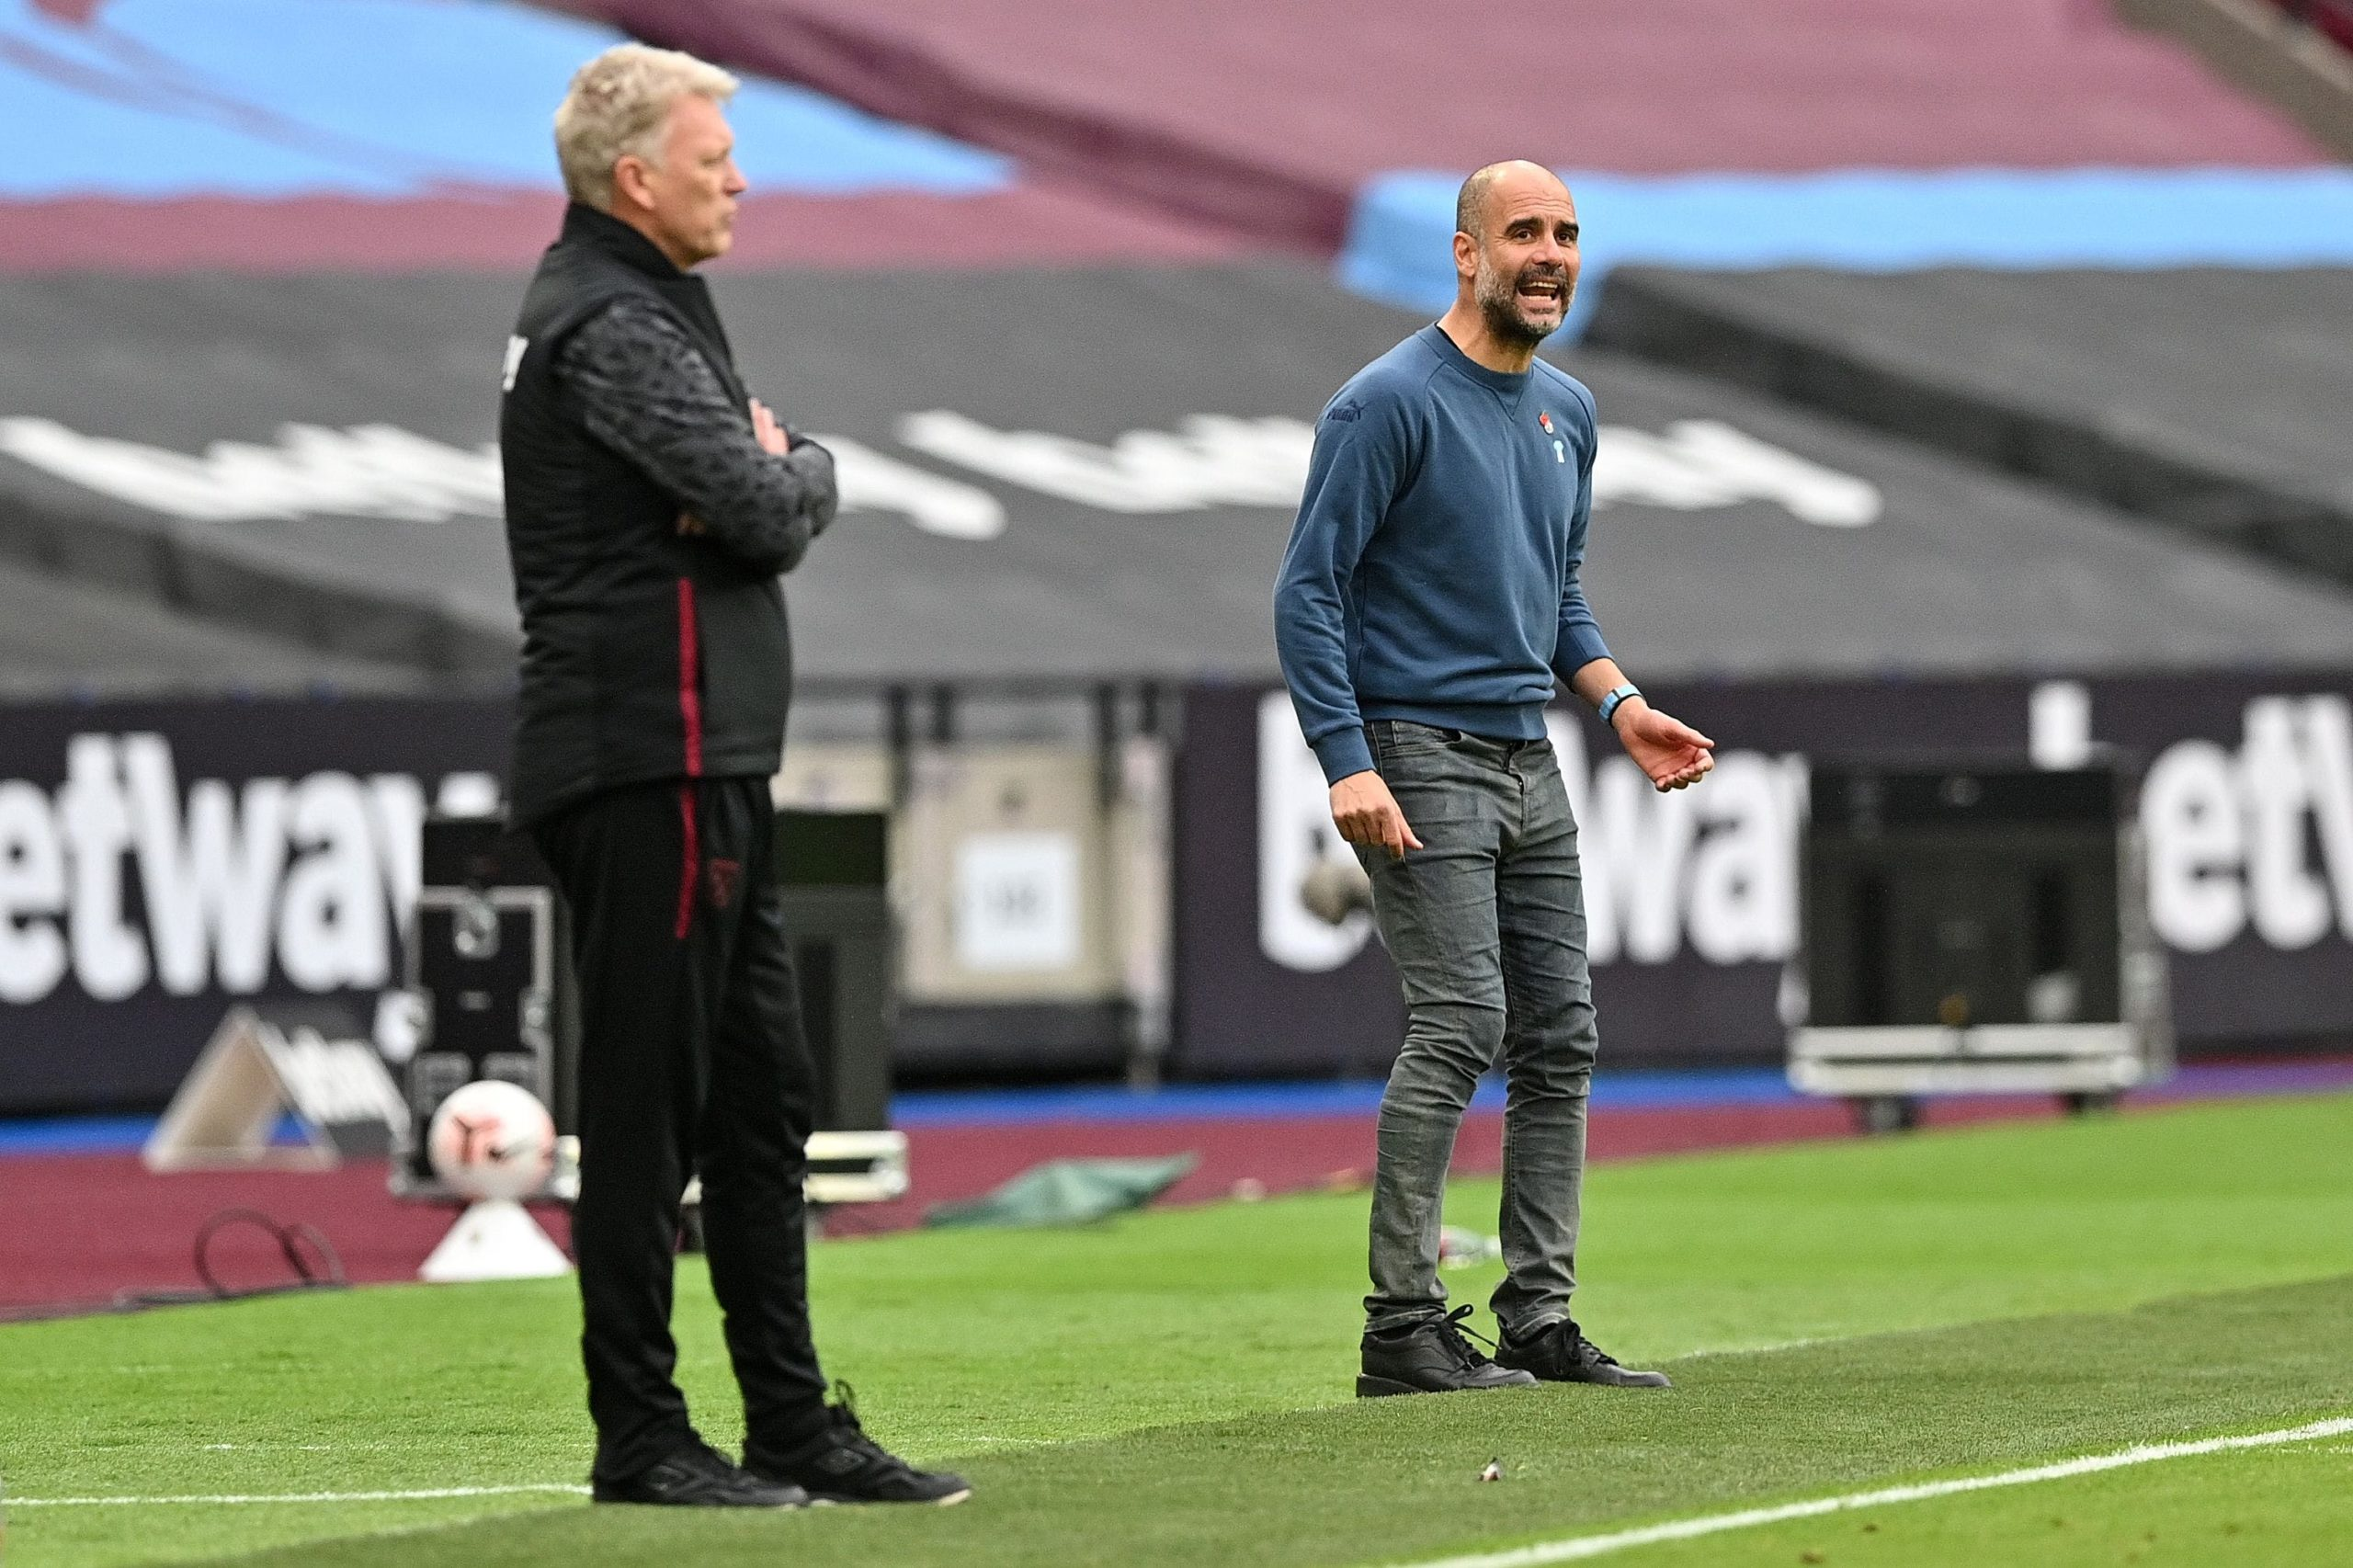 Pep Guardiola will need to reinvent himself at Manchester City